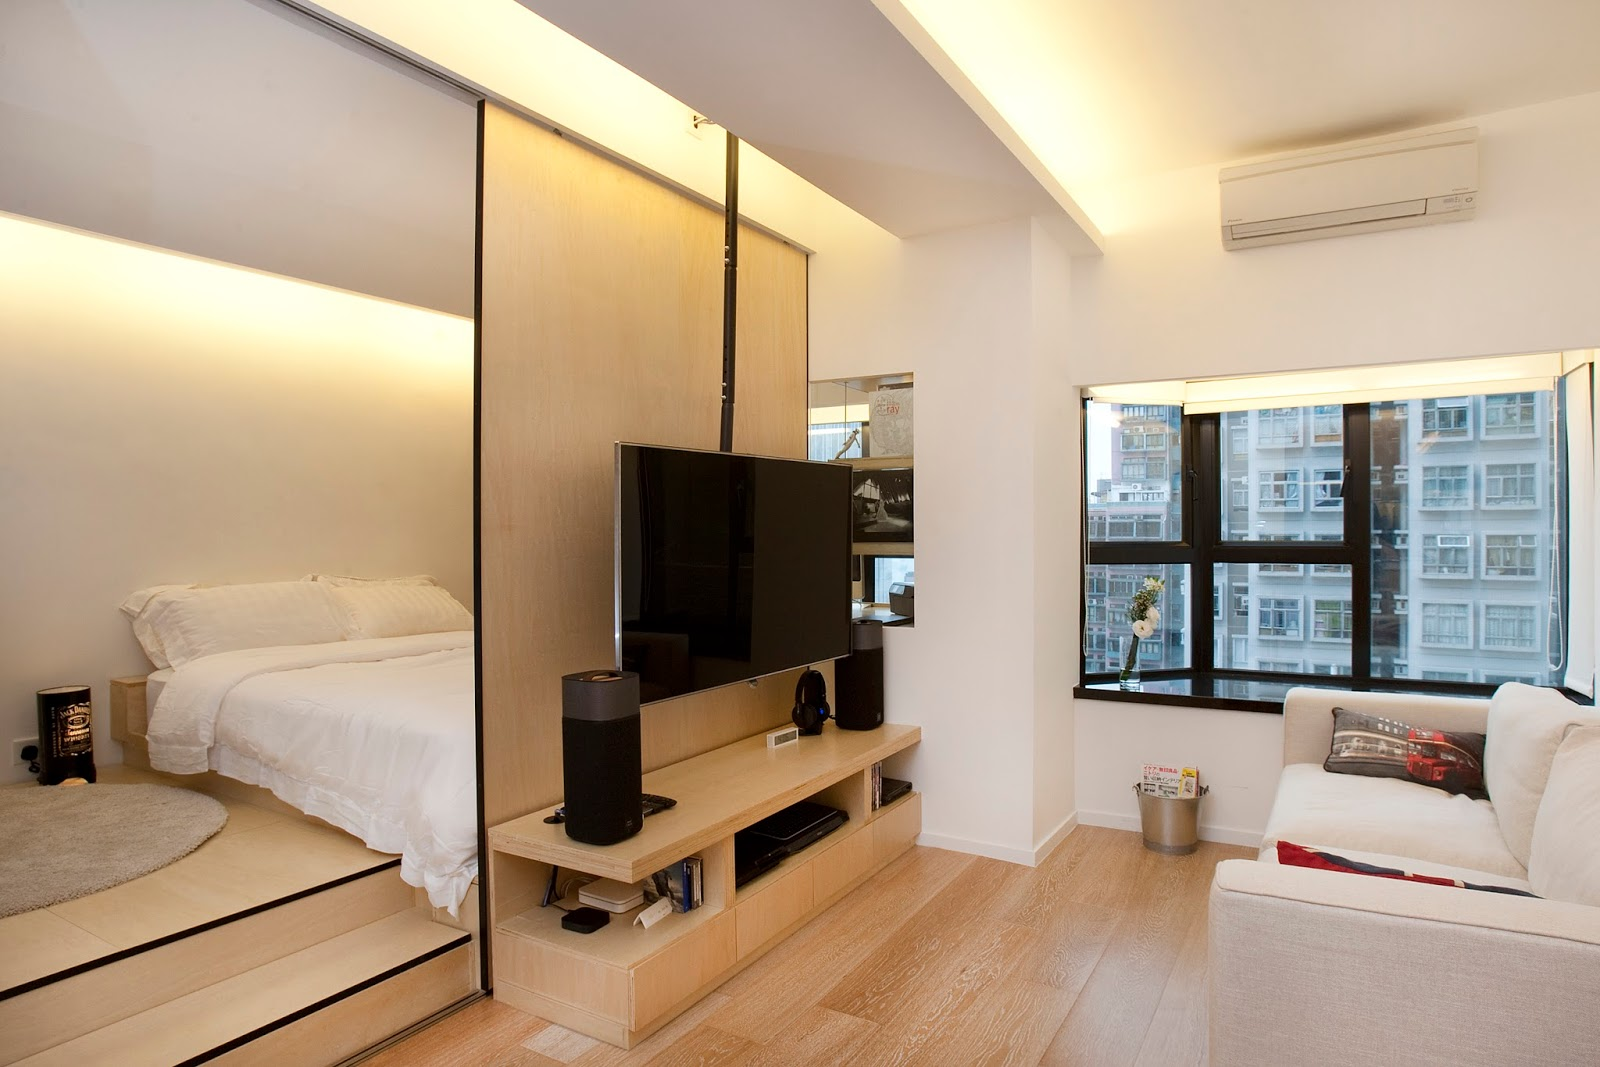 Hong kong interior design tips ideas clifton leung 6 ways to make small spaces look bigger - Tv small spaces design ...